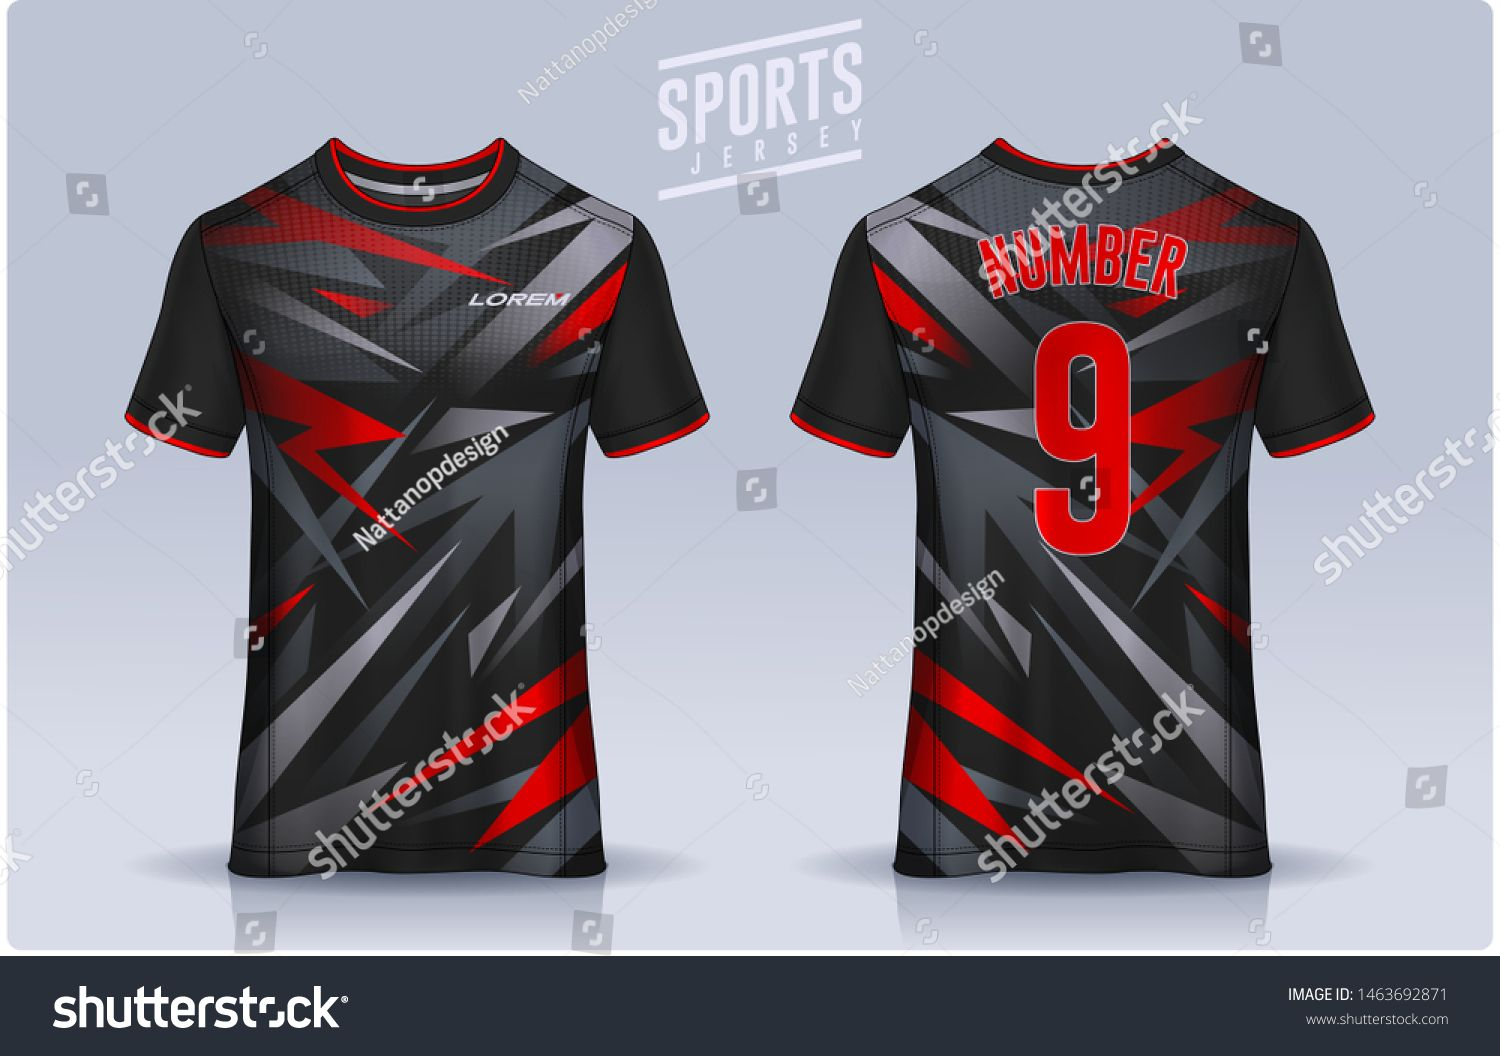 Download T Shirt Sport Design Template Soccer Jersey Mockup For Football Club Uniform Front And Back Vi Sports Jersey Design Sports Tshirt Designs Rugby Jersey Design